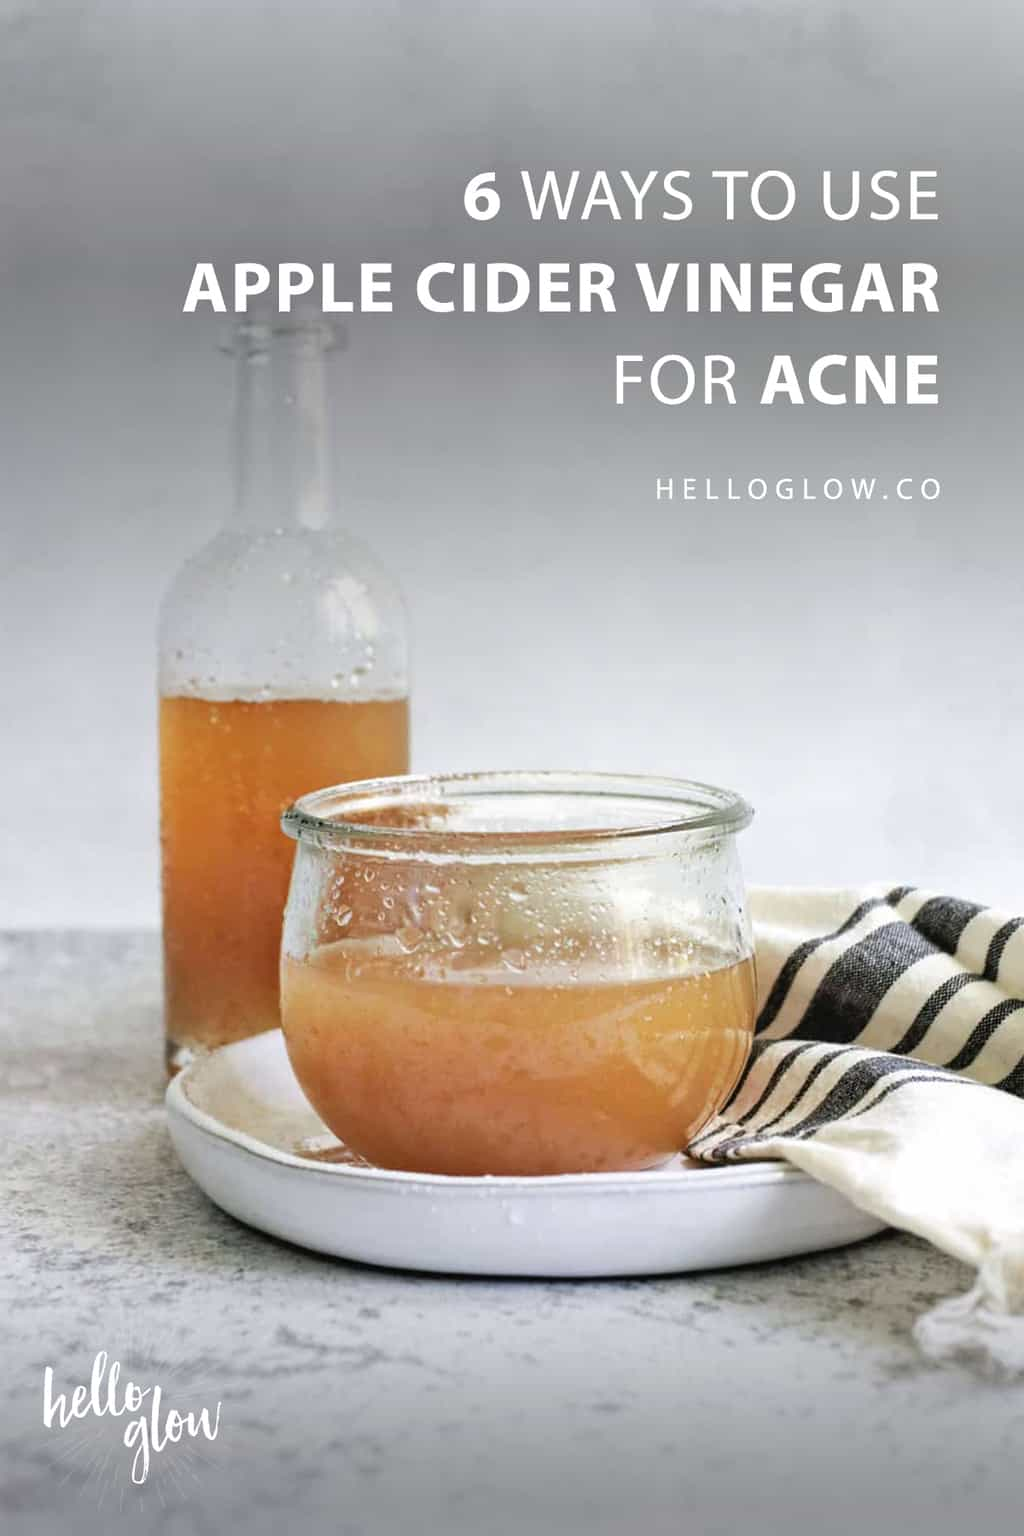 Can we use apple cider vinegar on face daily